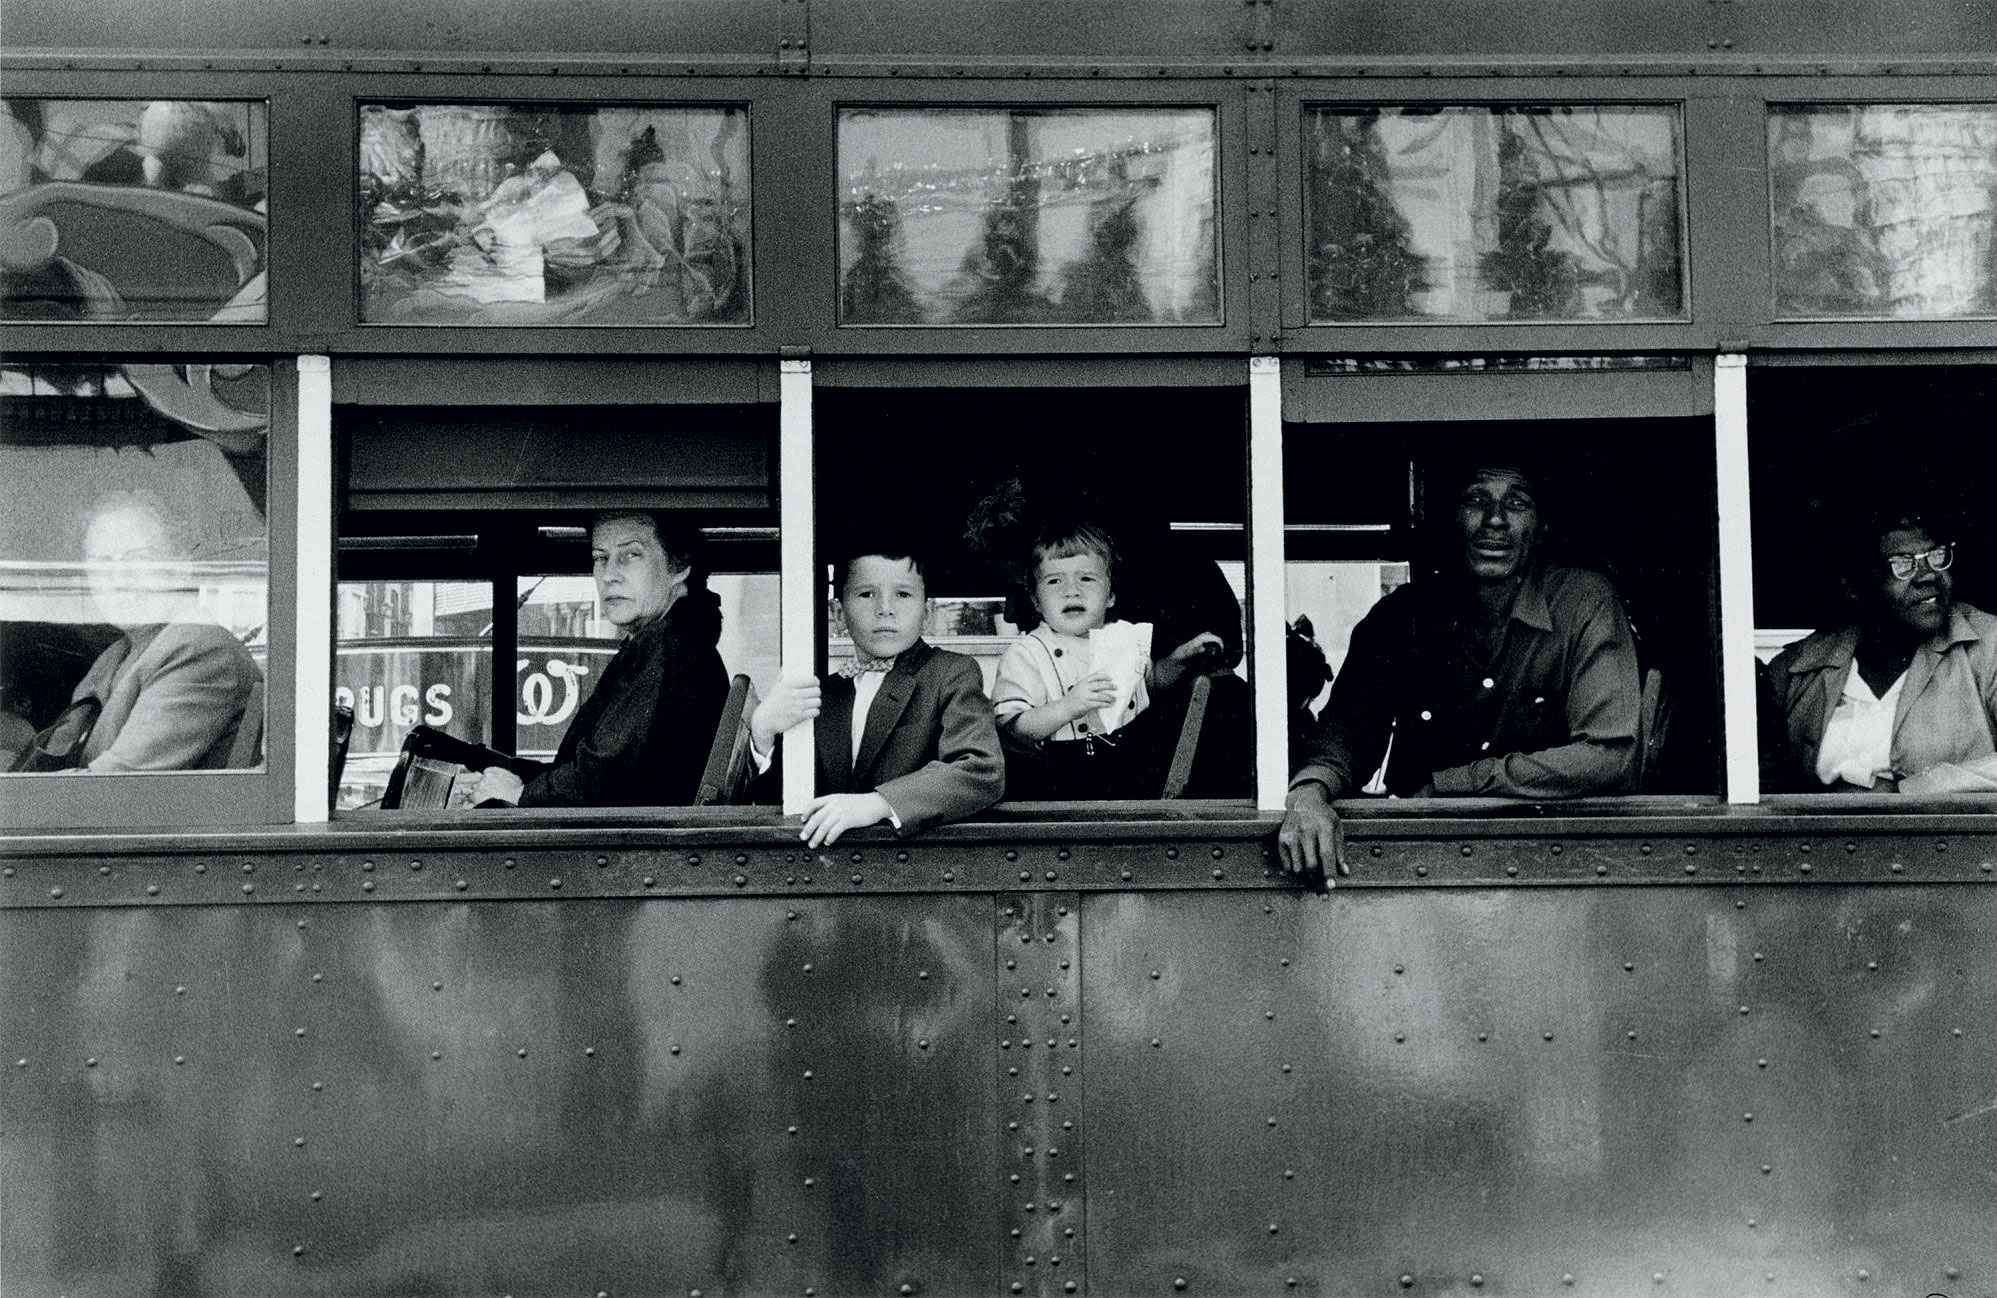 Trolley -- New Orleans, 1955